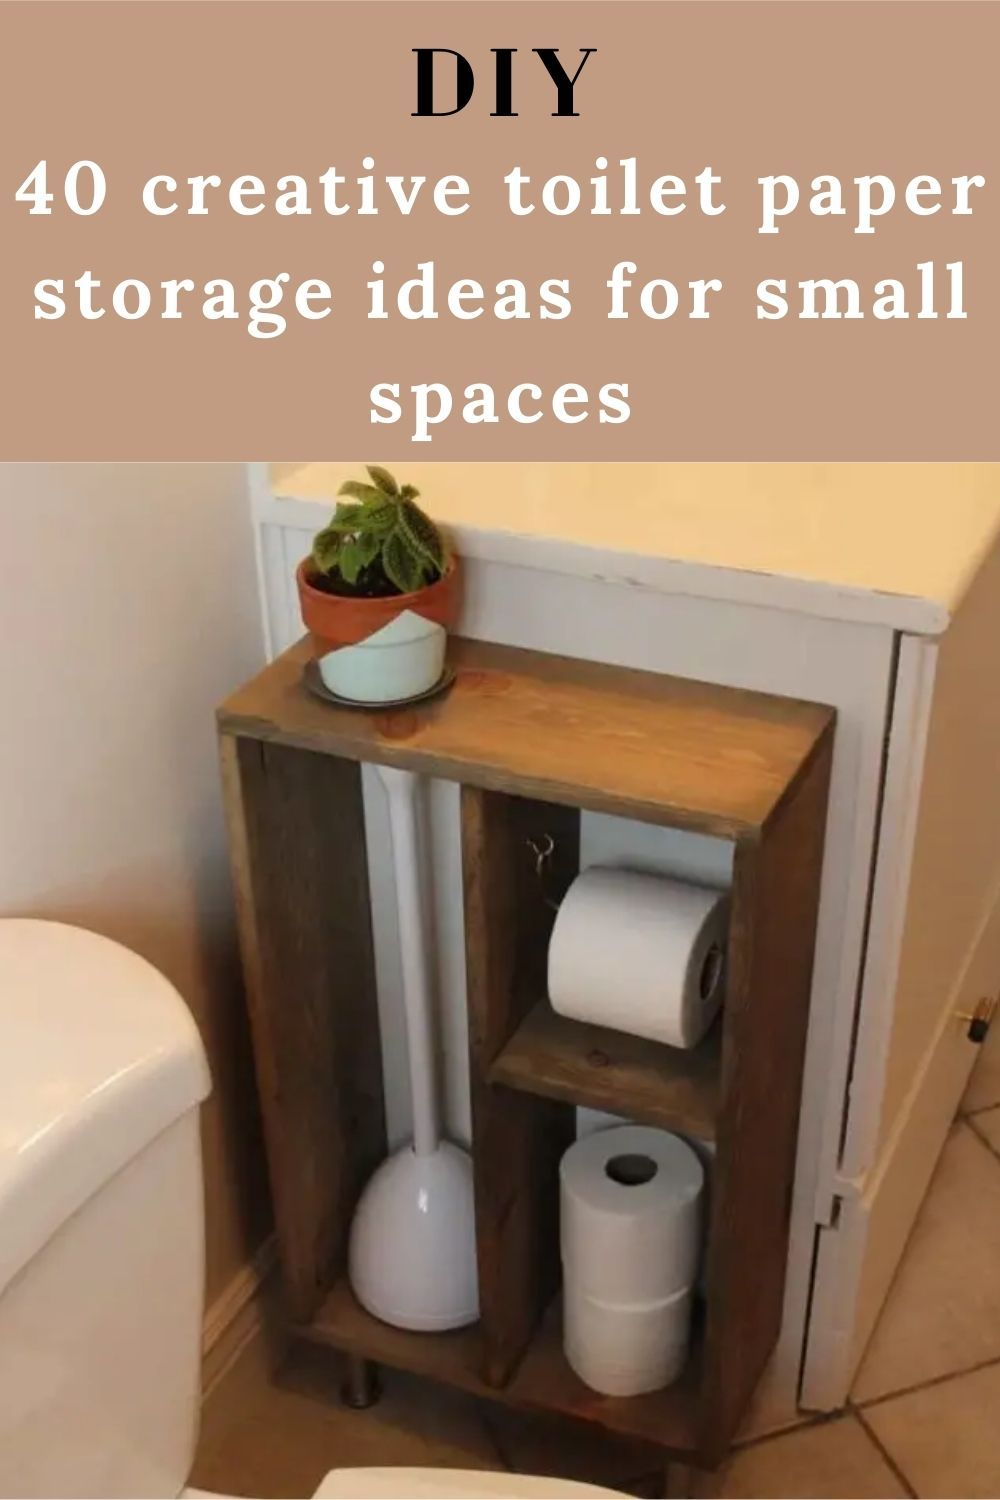 Photo of 40 creative toilet paper storage ideas for small spaces